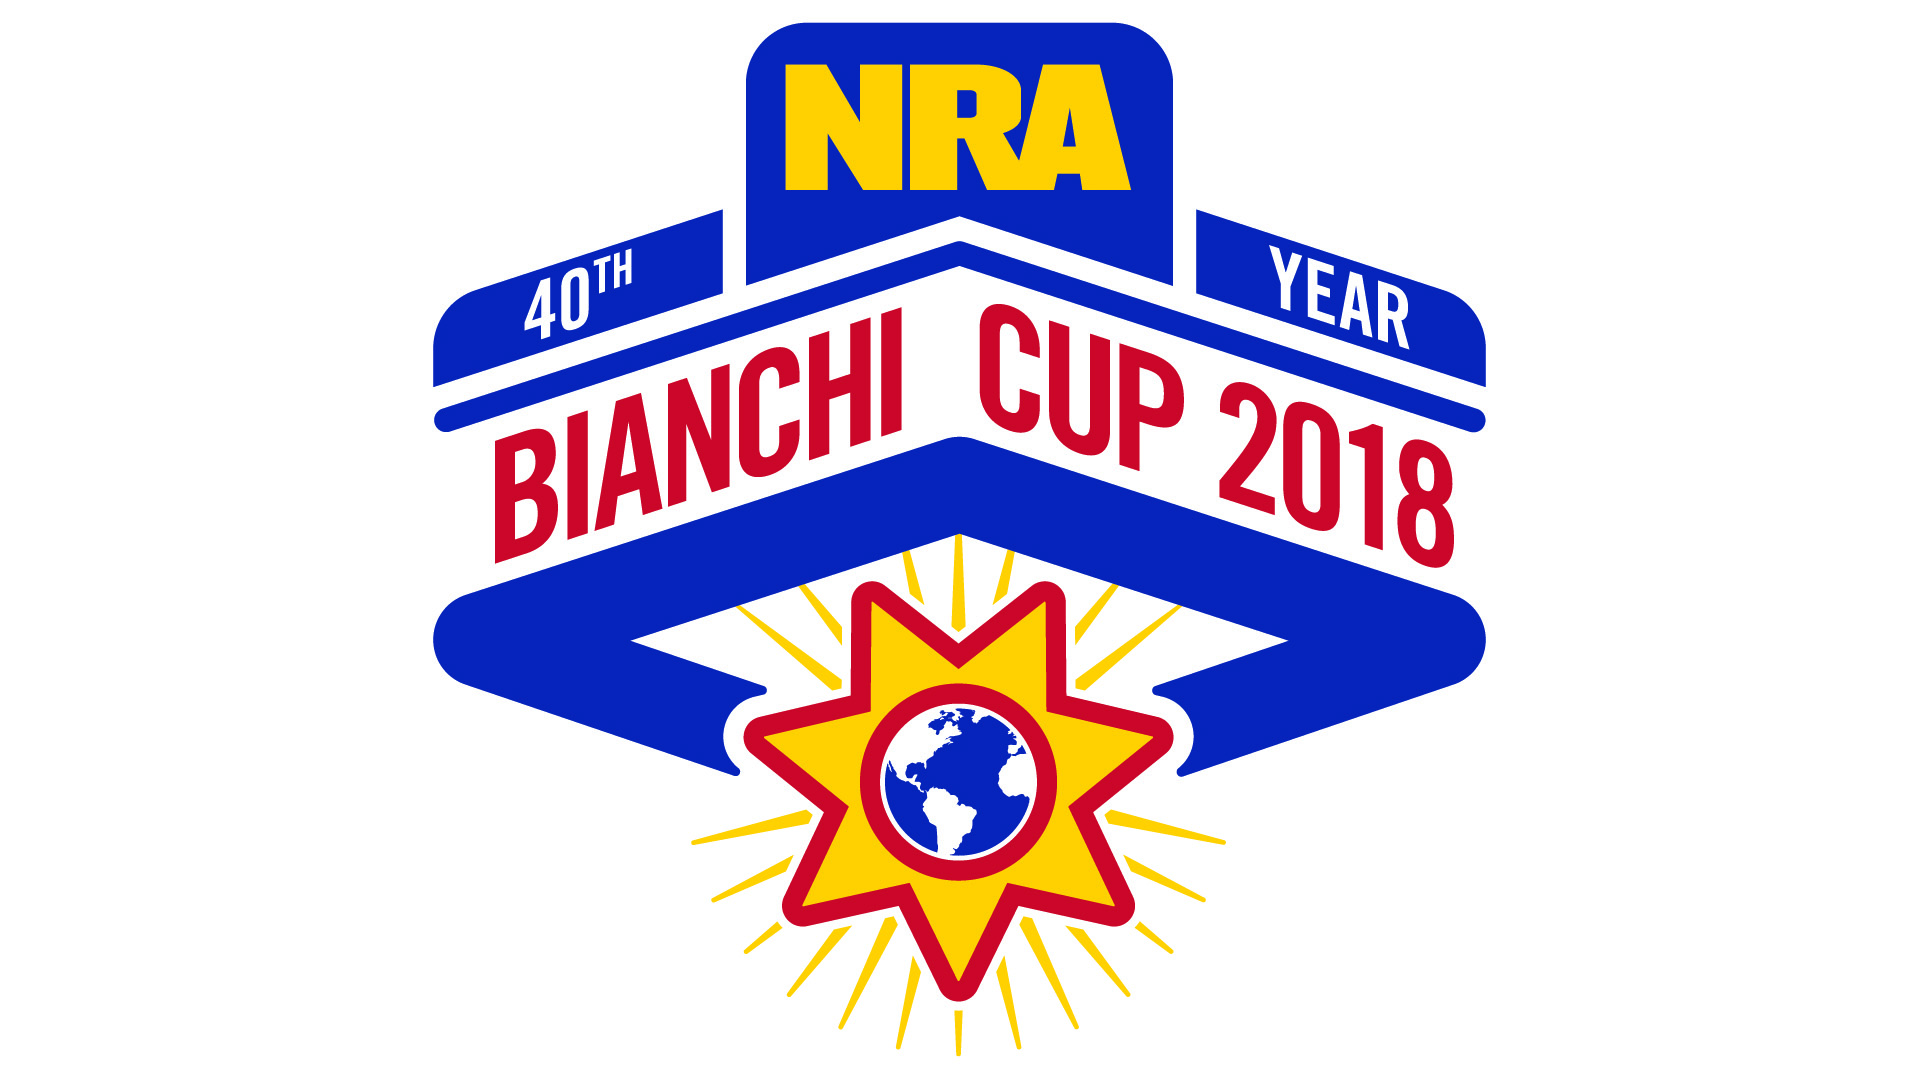 Register Now For the NRA Bianchi Cup Presented by Colt May 23-25 in Hallsville, Missouri!